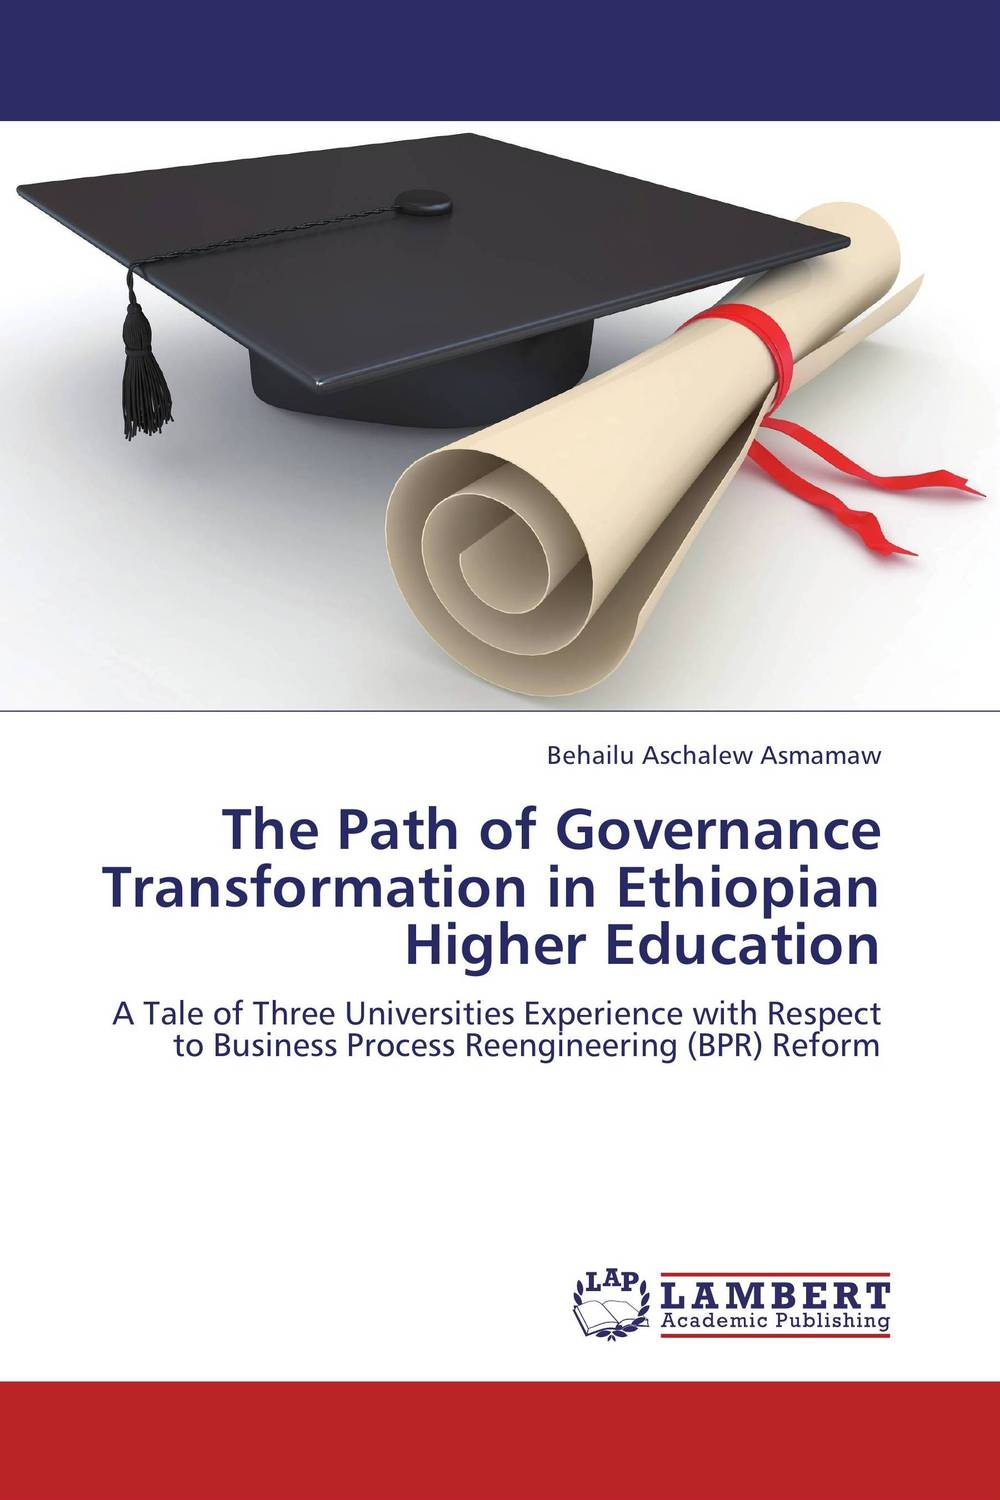 The Path of Governance Transformation in Ethiopian Higher Education a conscientious thought on worldwide latest governance system